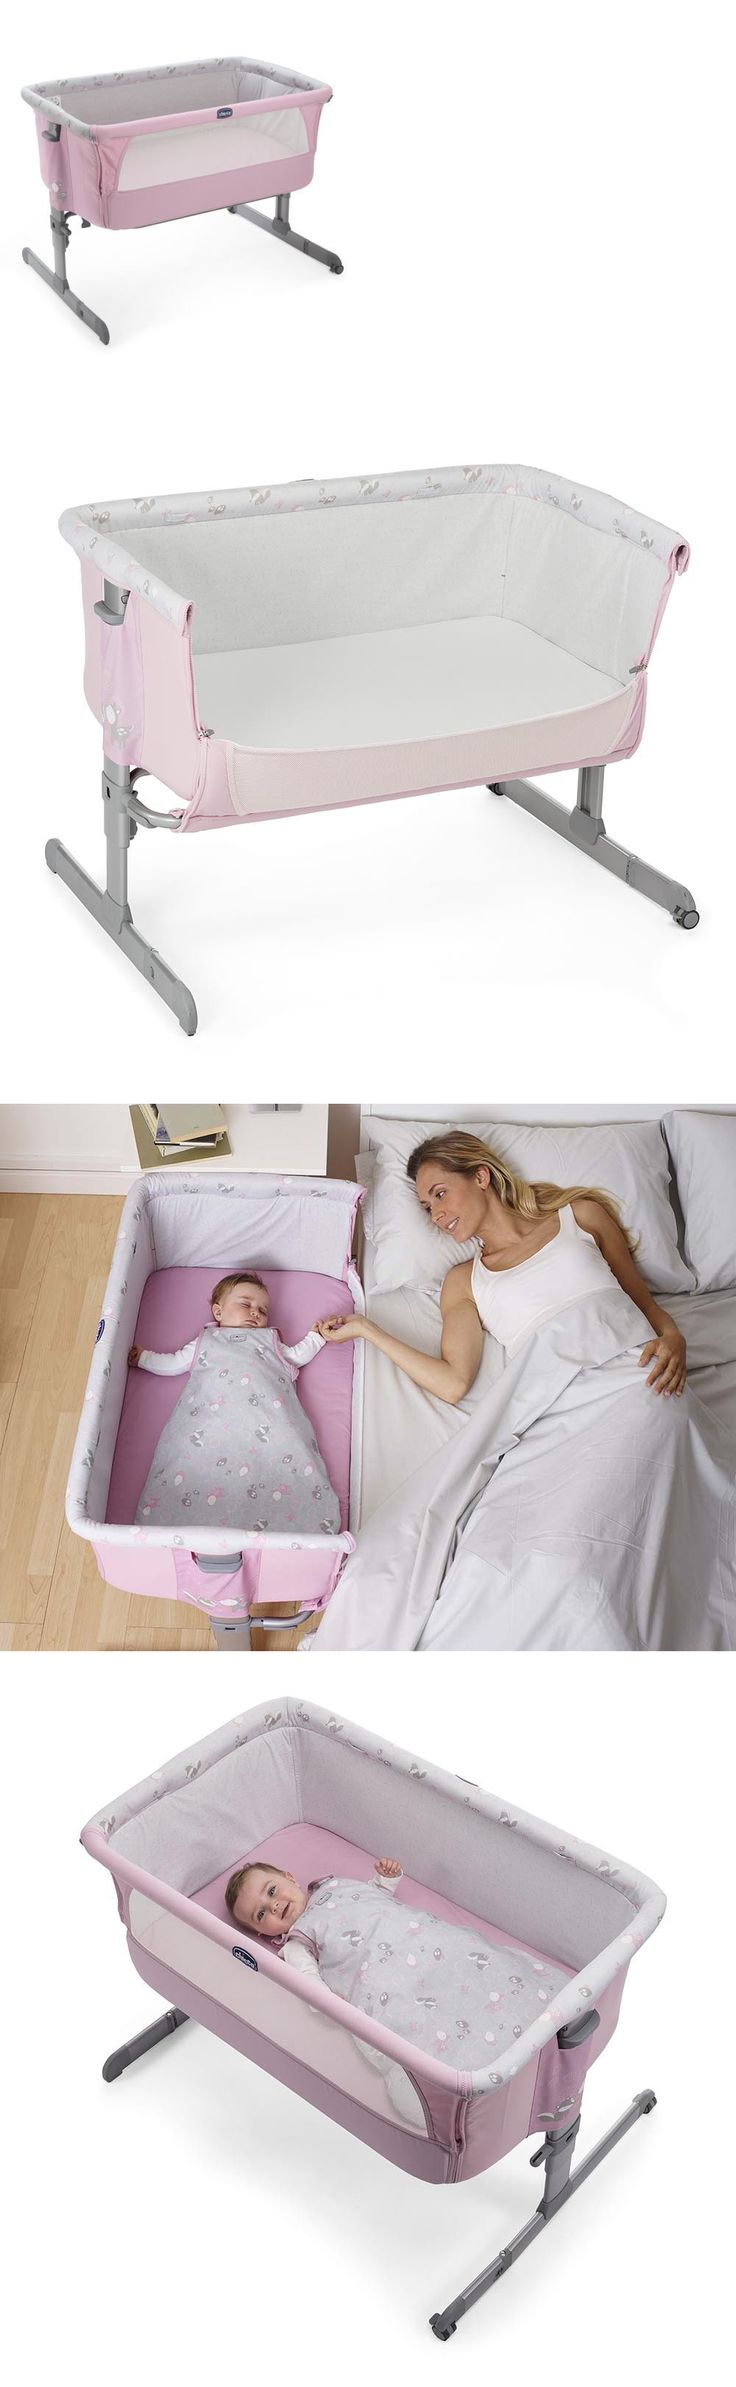 Baby Nursery: Chicco Next 2 Me Princess Side Sleeping Crib Baby Crib New Fast Delivery 2017 -> BUY IT NOW ONLY: $215.0 on eBay!